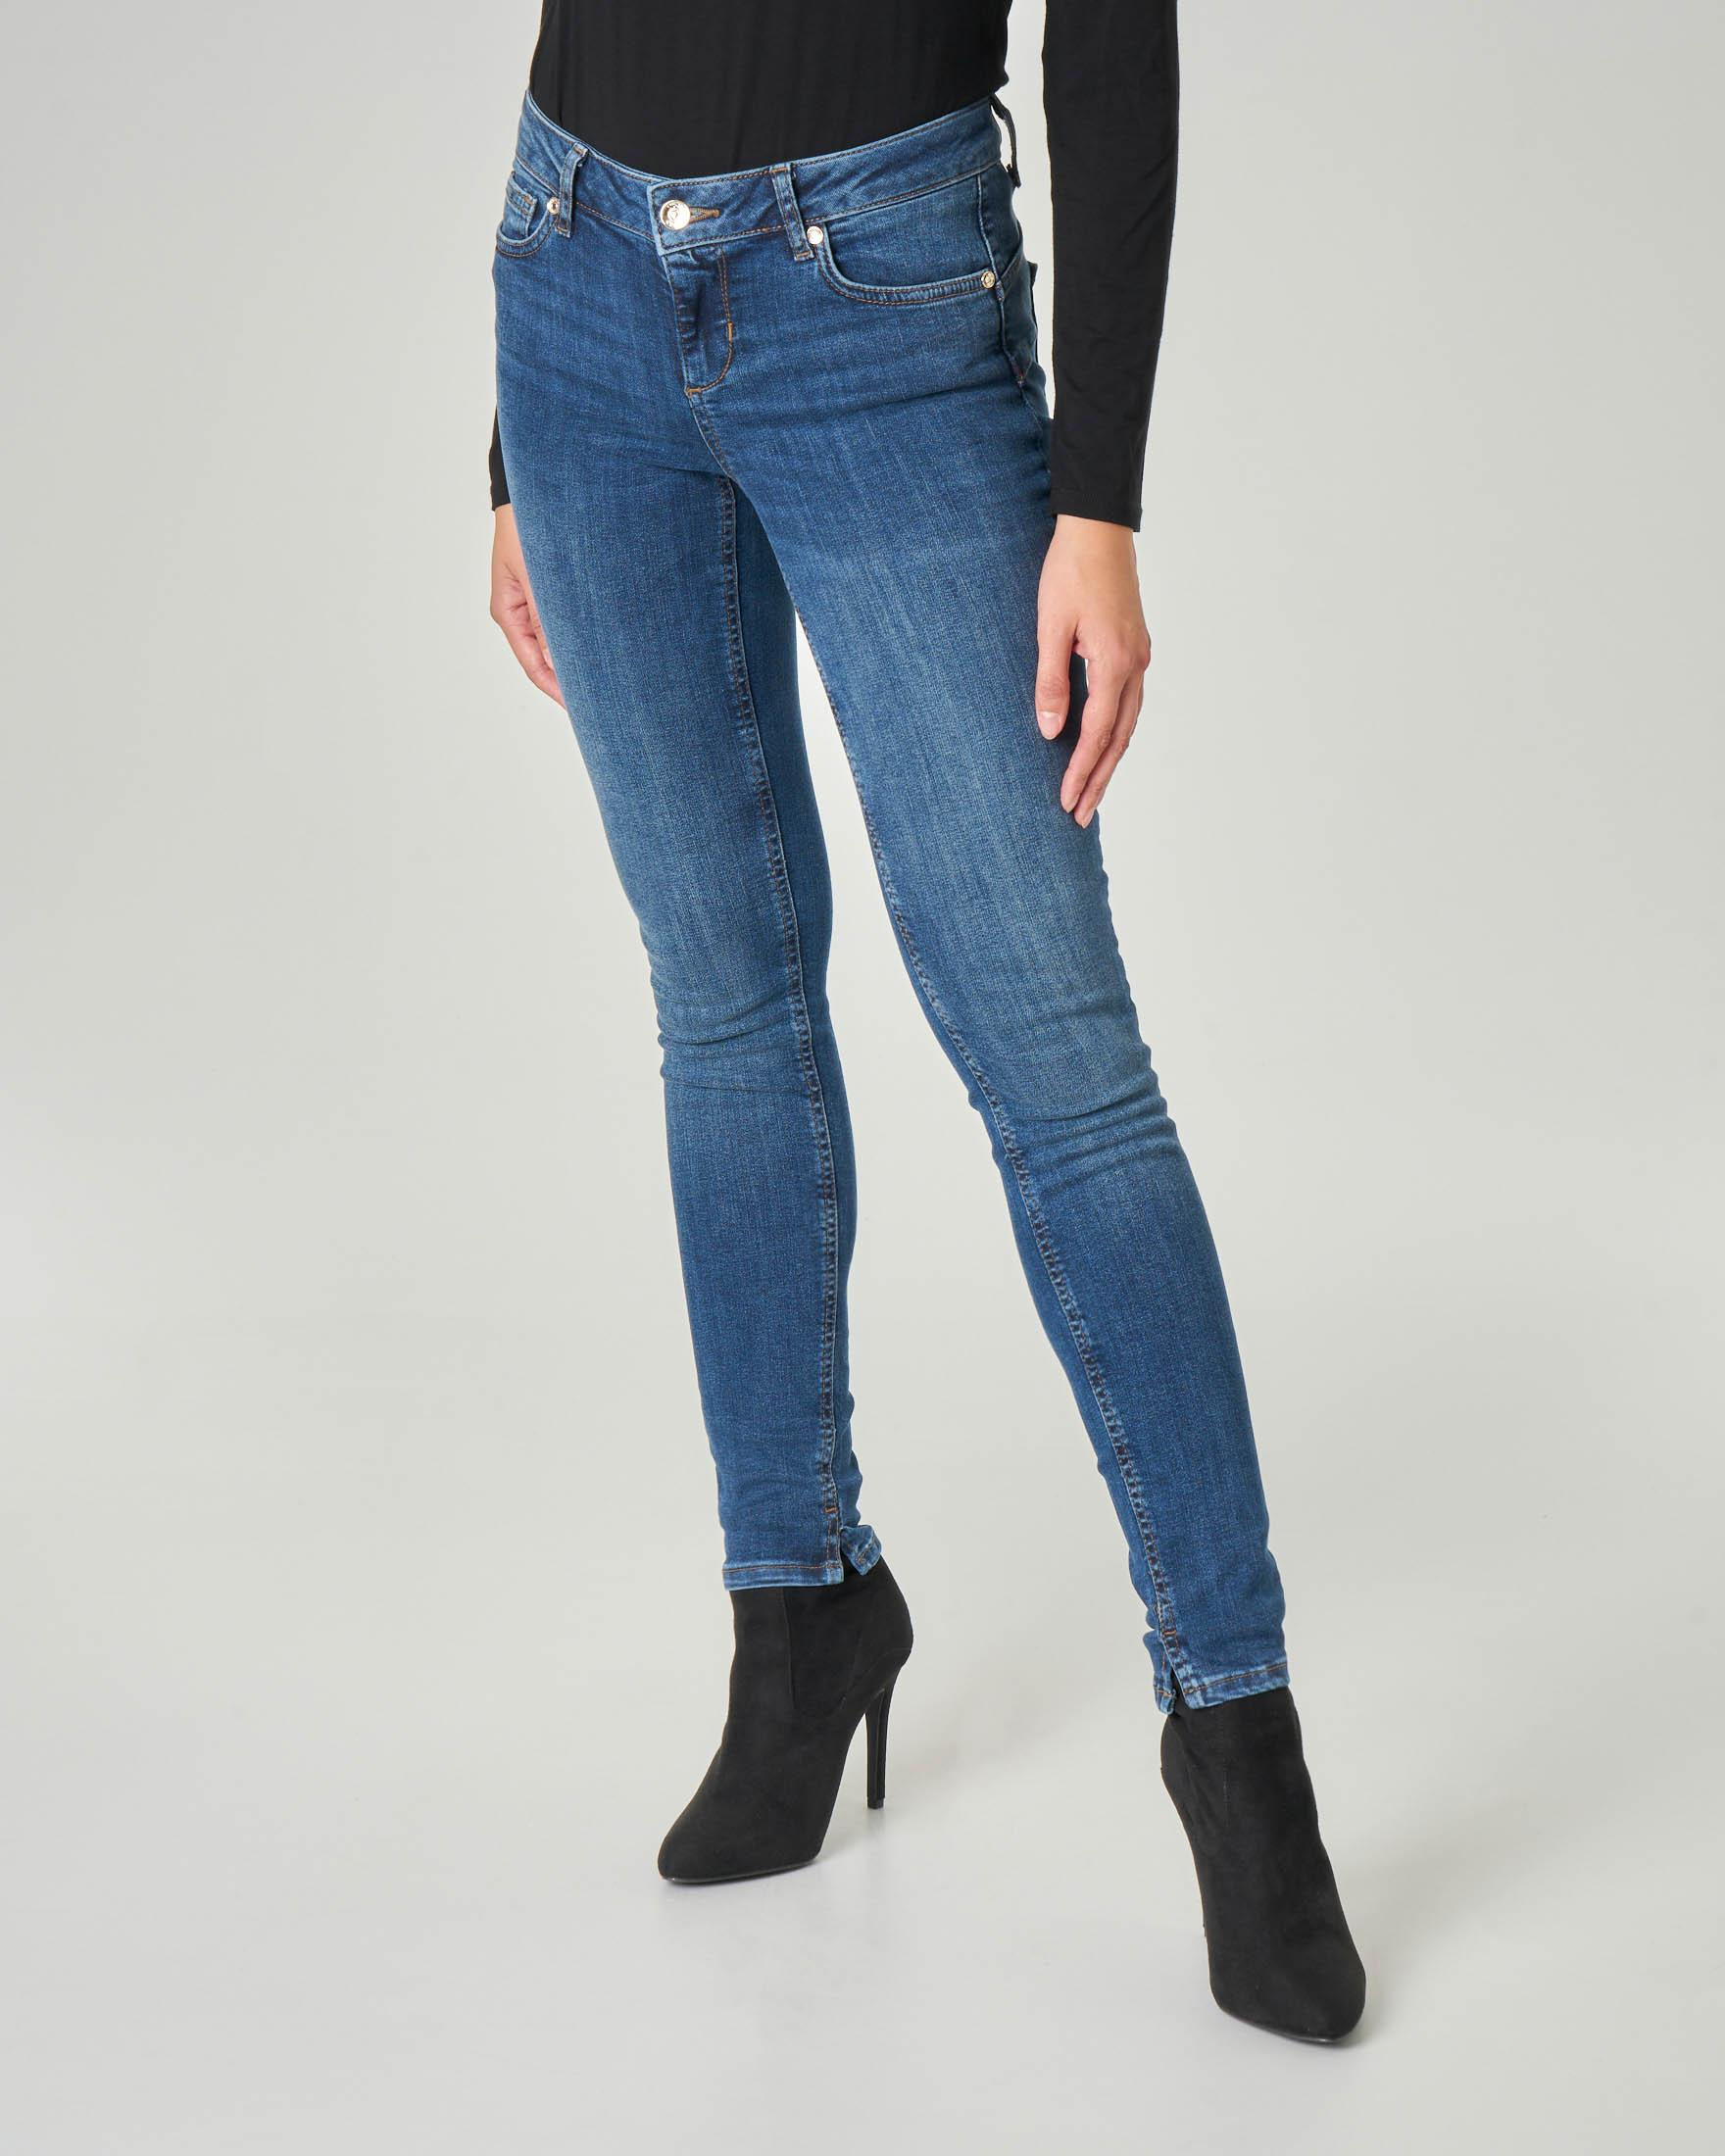 Jeans skinny Bottom up blu super stone washed a vita media con spacchetti sul fondo